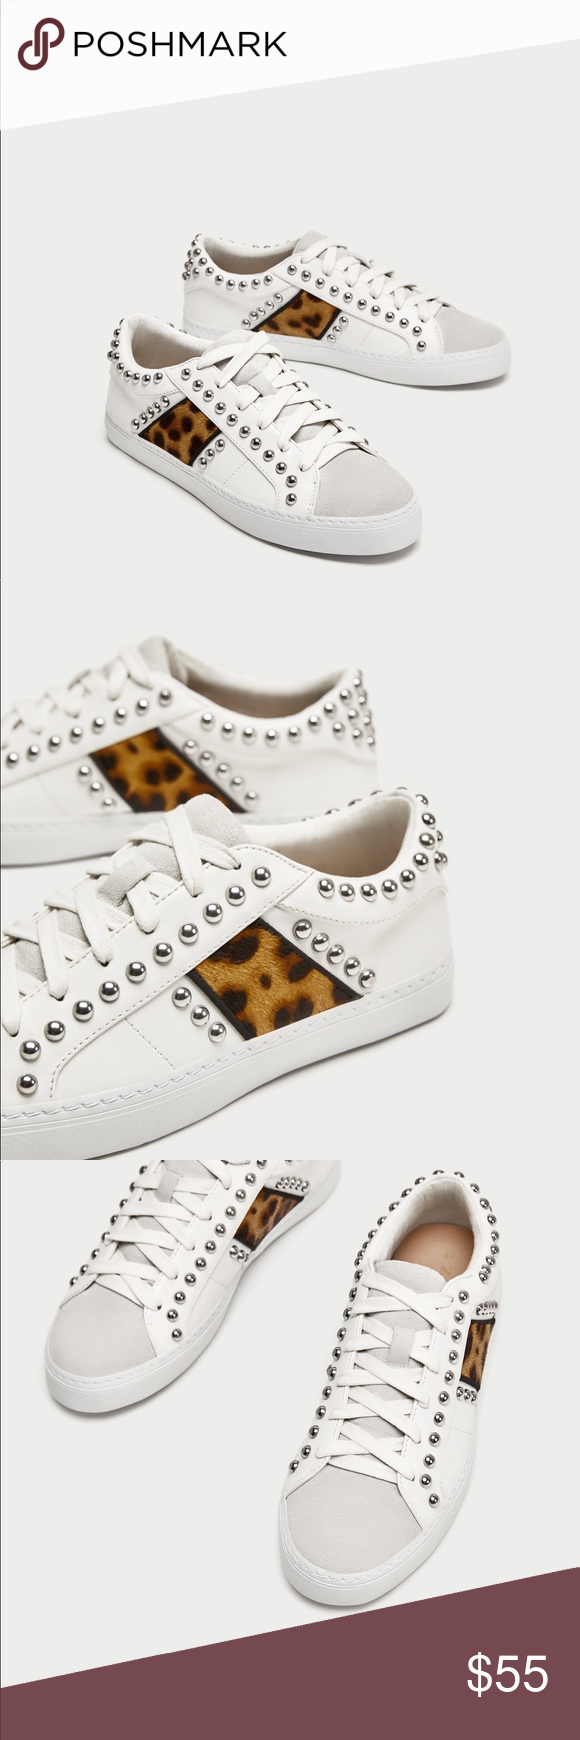 3a8373c5aabb NWT Zara White Studded Sneakers with Leopard Print White sneakers with  silver embellishments and leopard print. White sneakers with contrasting  colours and ...